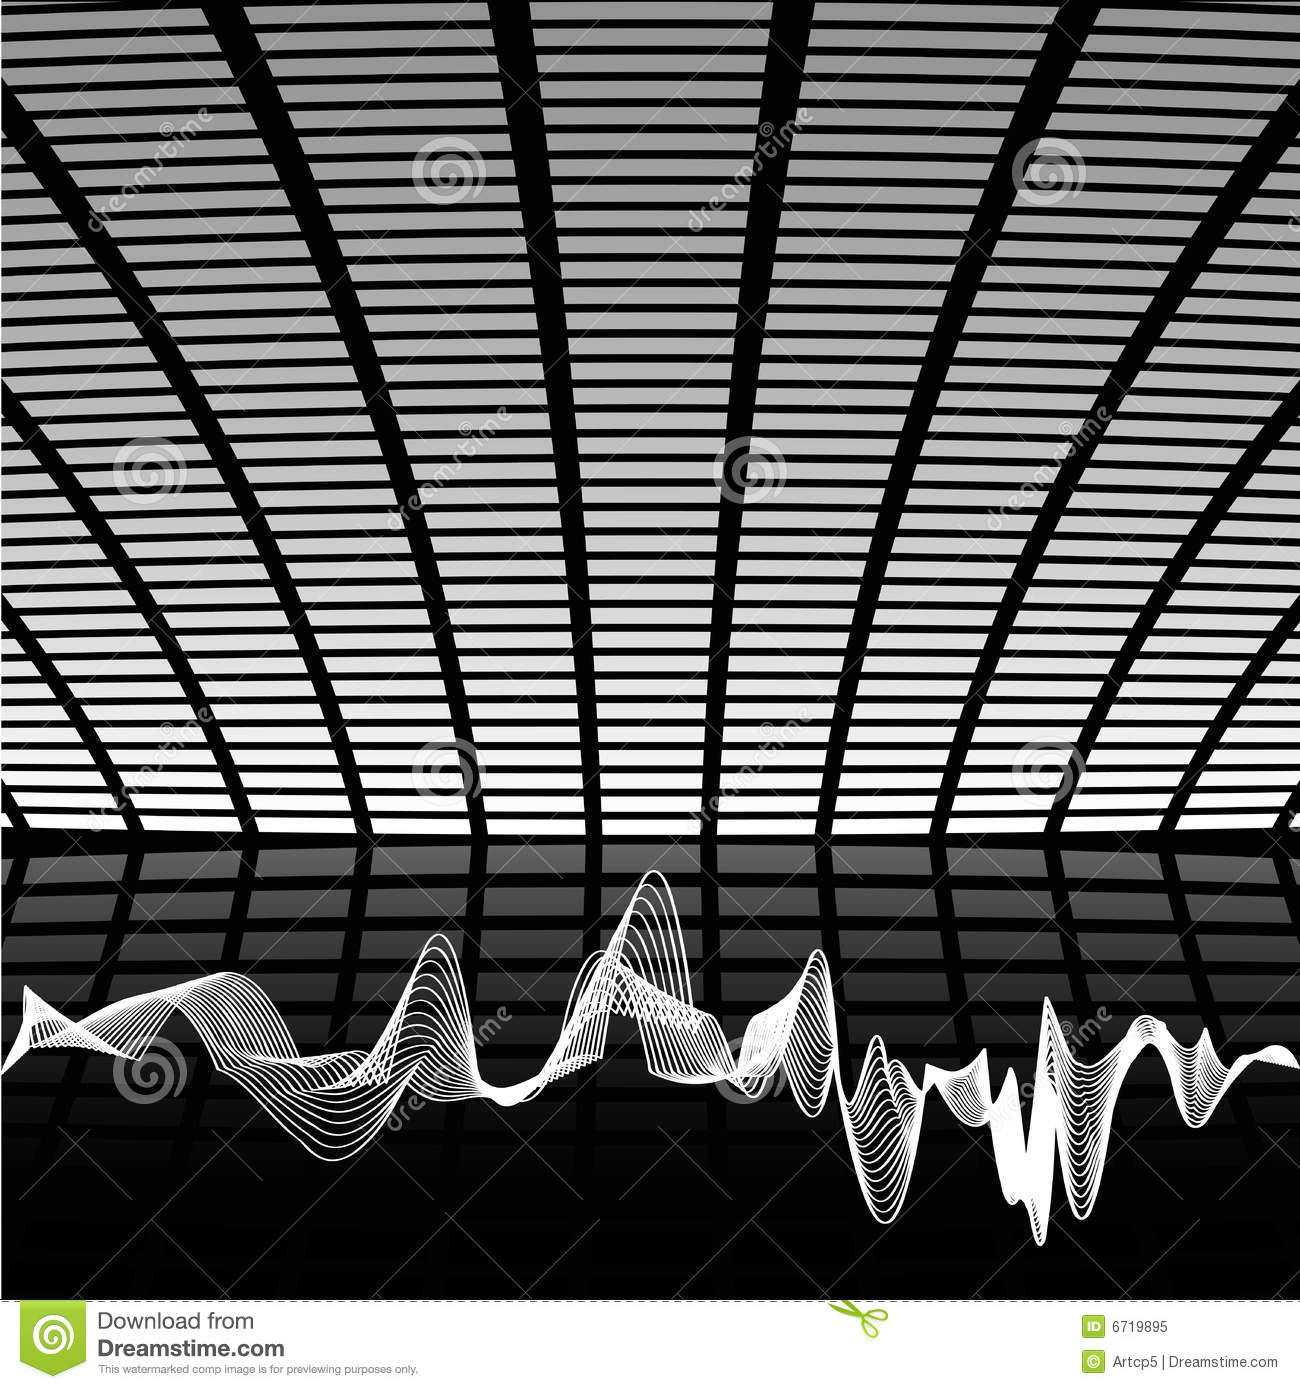 Download Wallpaper Music Black And White - hi-tech-music-wallpaper-6719895  Best Photo Reference_87089.jpg